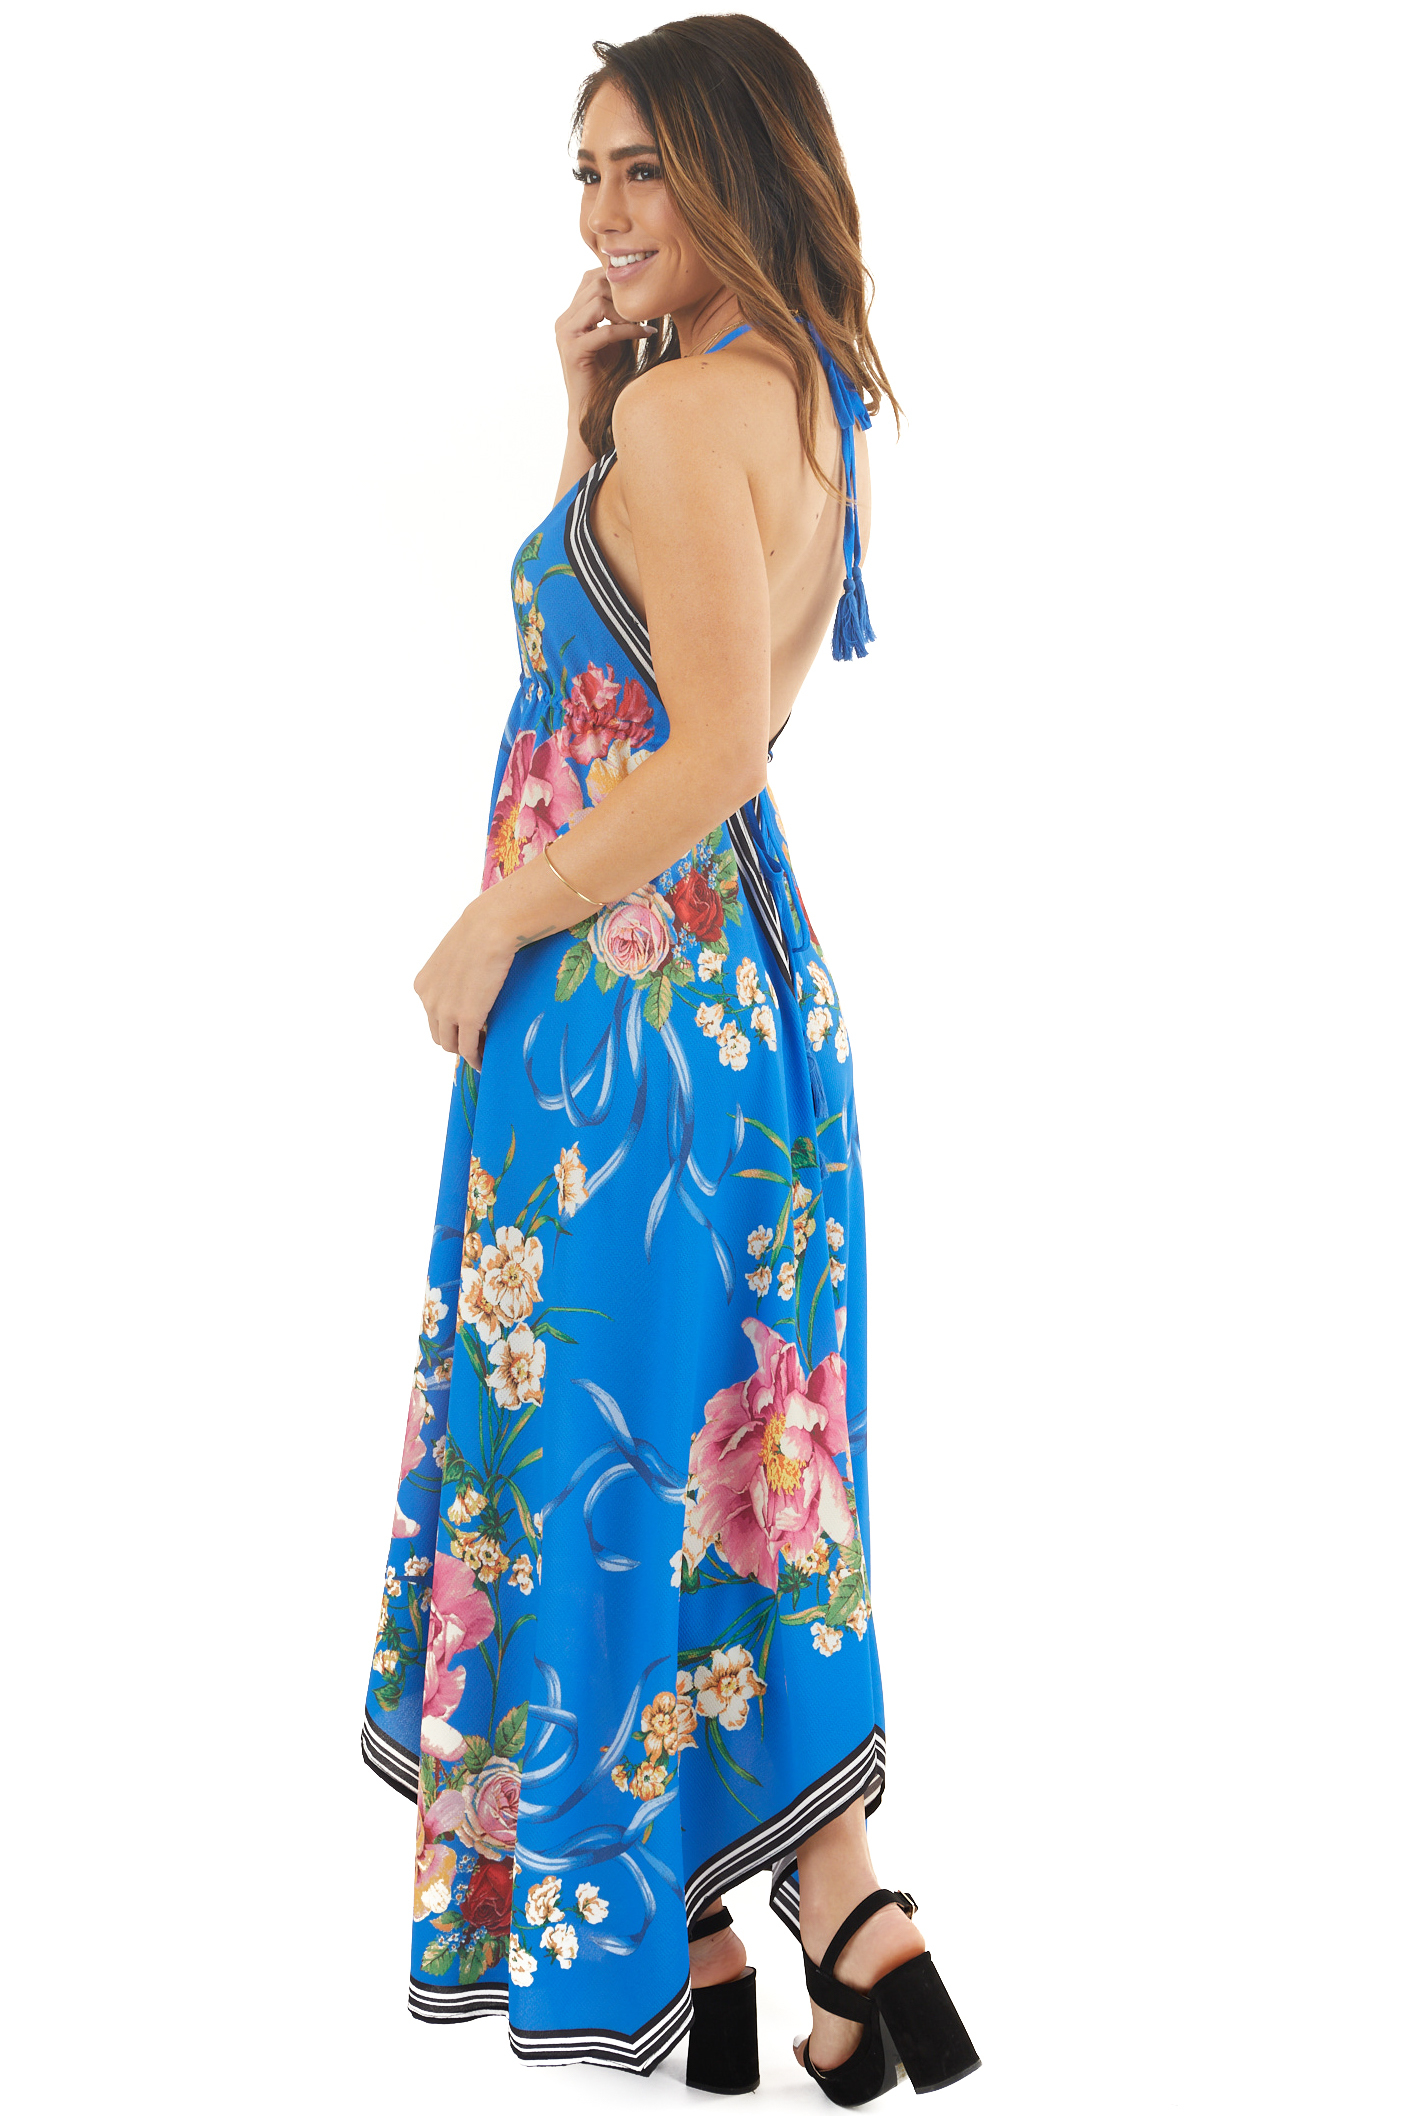 Cobalt Blue Floral Handkerchief Halter Maxi Dress